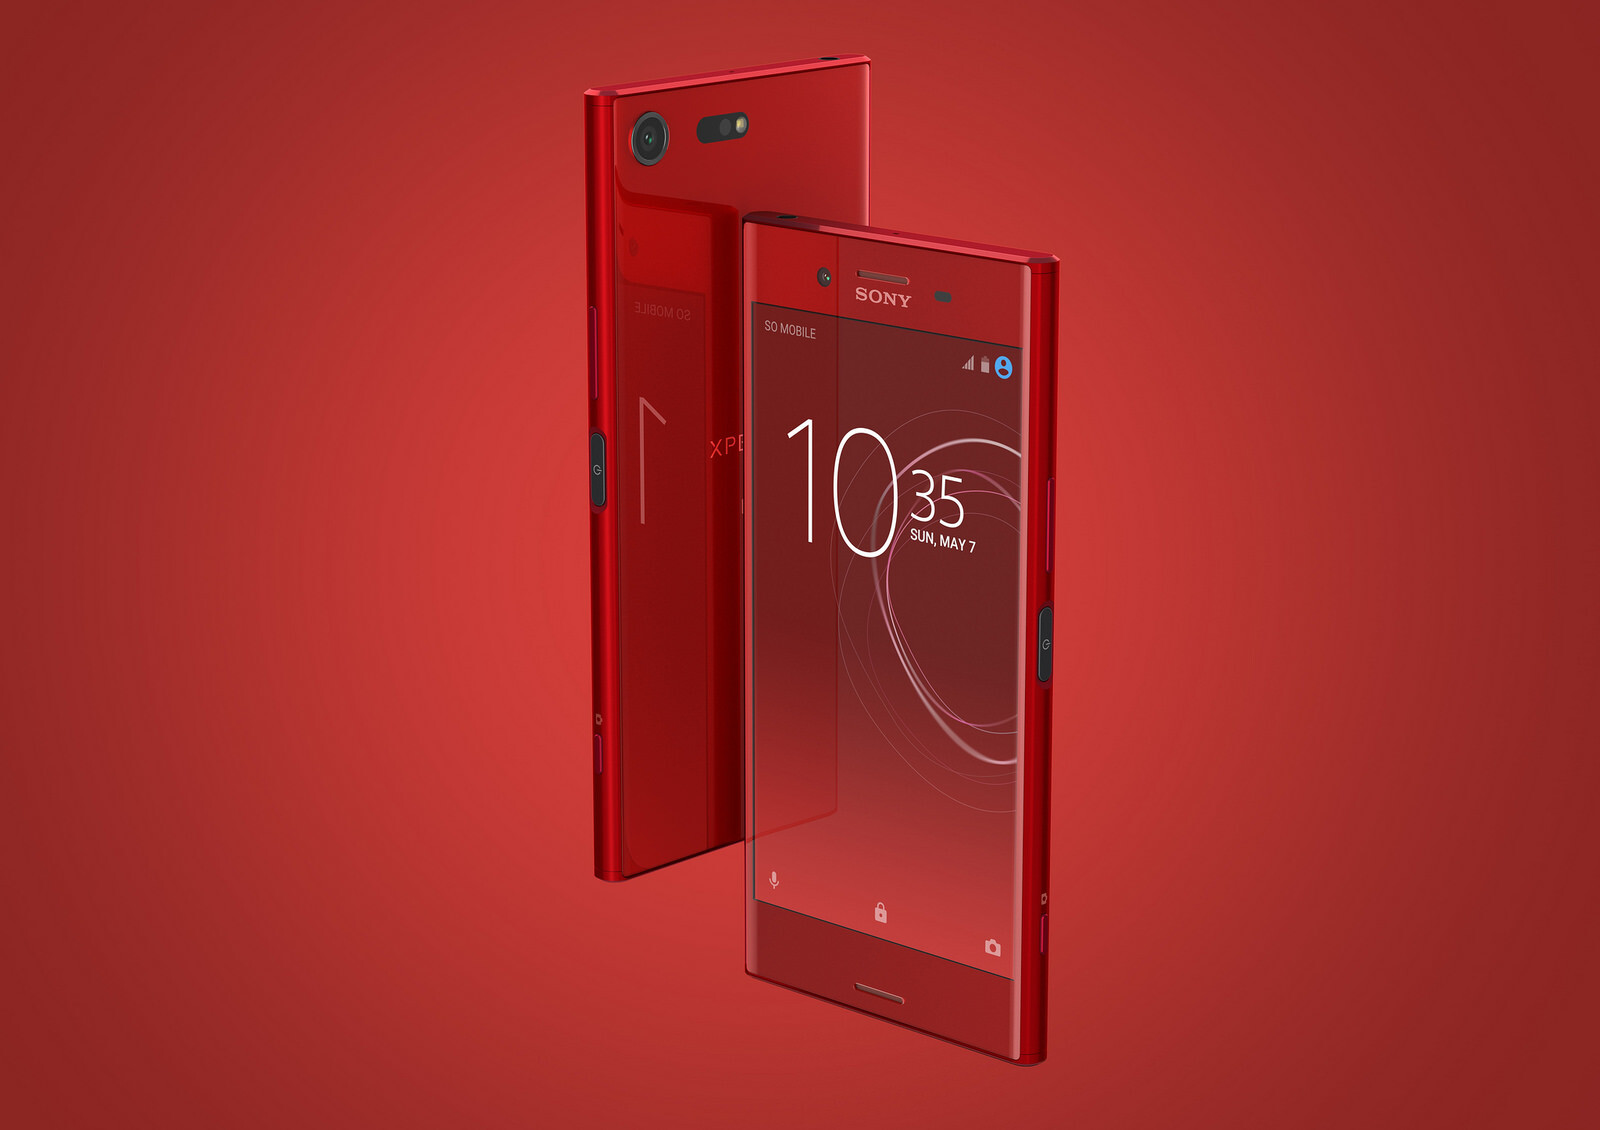 sony xperia xz premium. sony xperia xz premium in red xz t